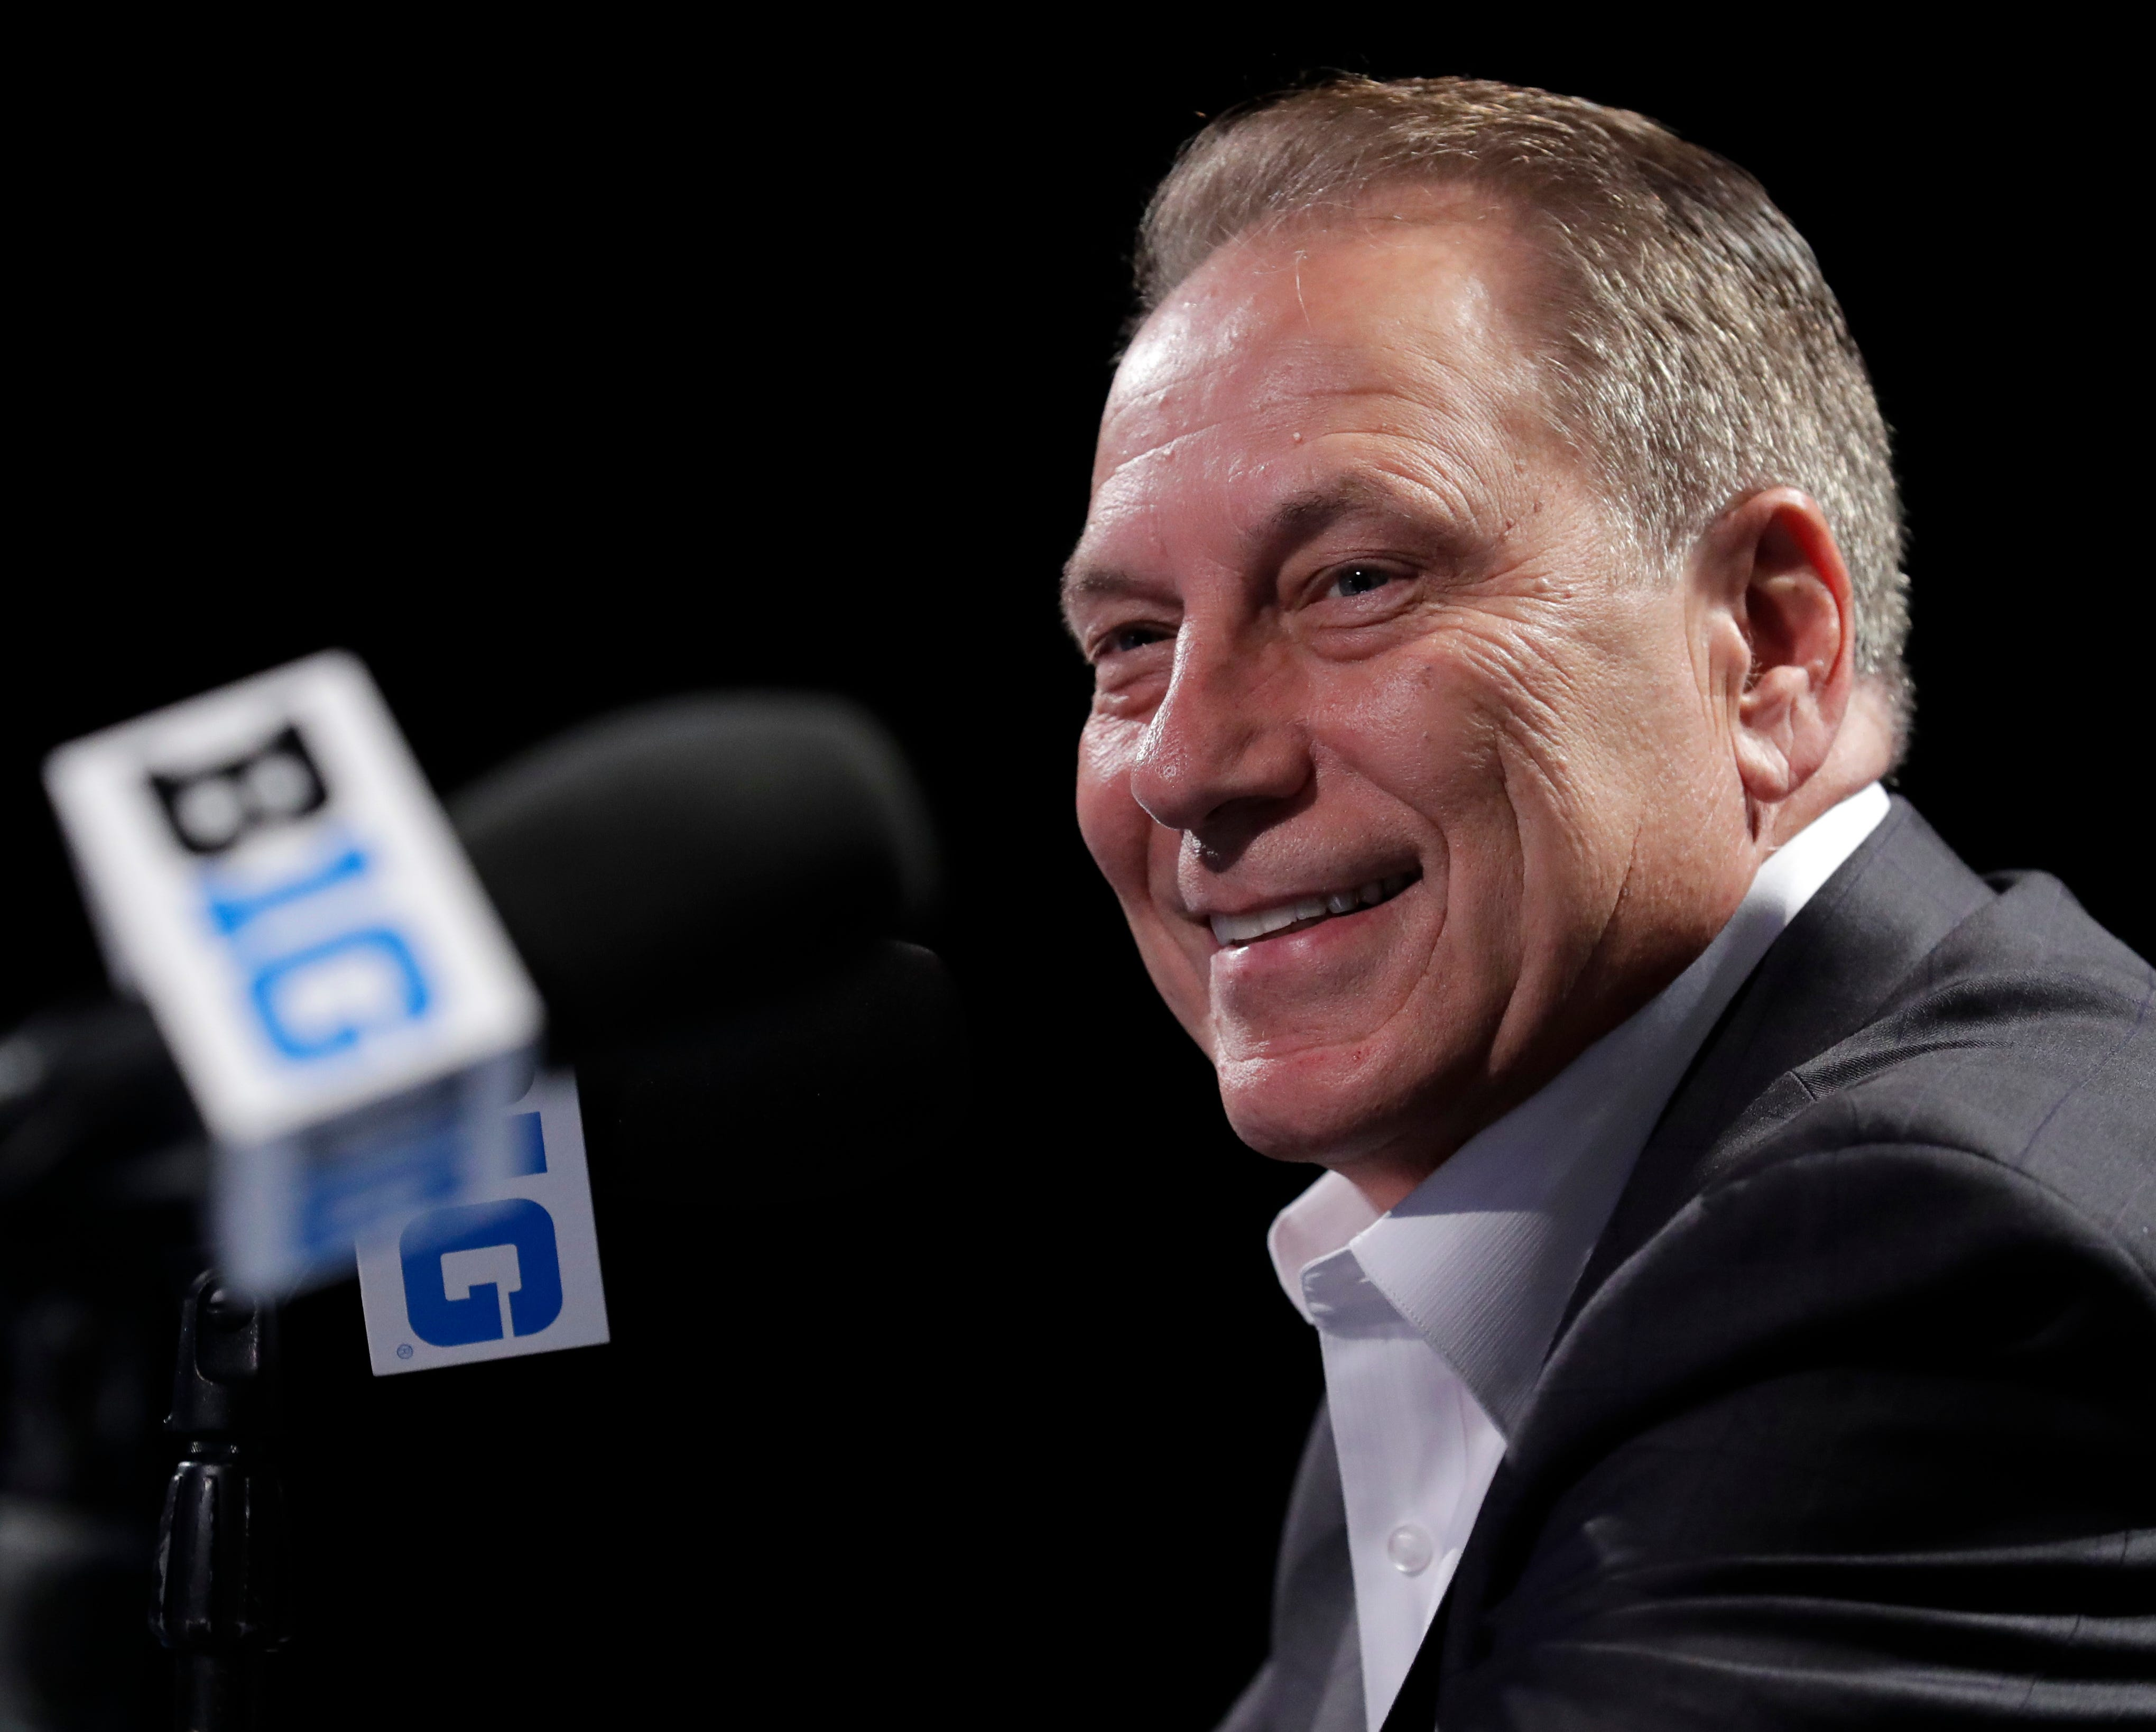 Michigan State coach Tom Izzo smiles as he speaks at a news conference during Big Ten basketball media day on Thursday, Oct. 11, 2018, in Rosemont, Ill.